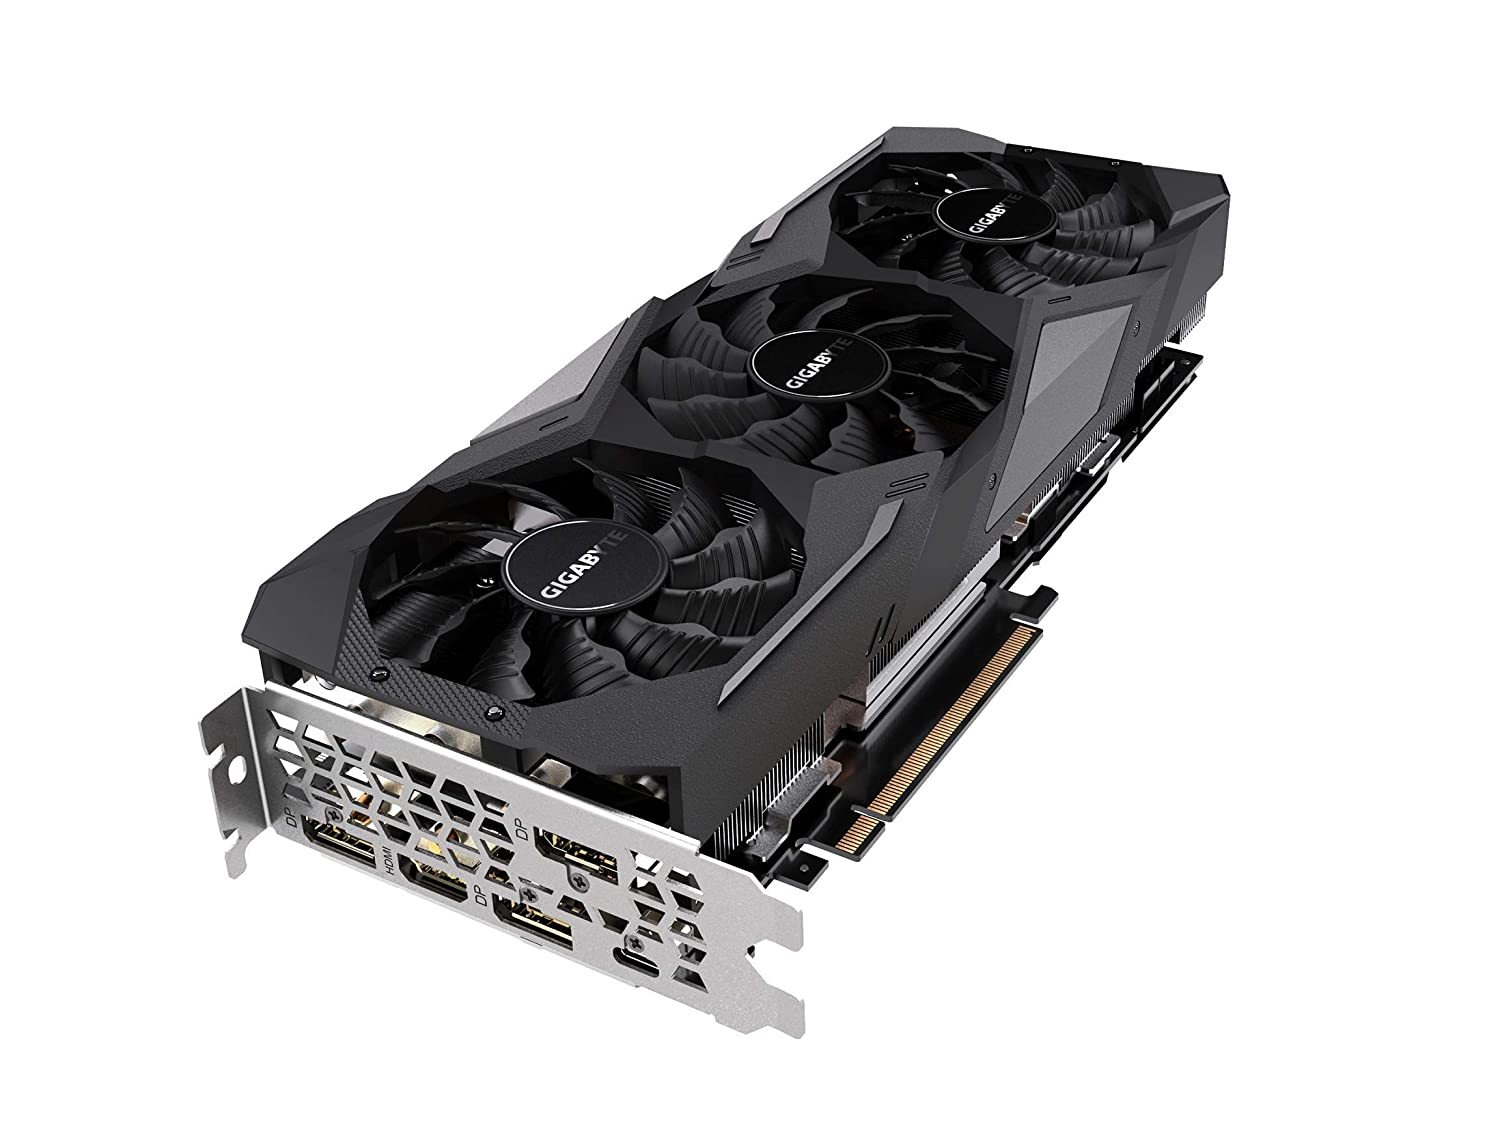 Image result for GIGABYTE GeForce RTX 2080 Ti Gaming OC 11GB Graphic Cards GV-N208TGAMING OC-11GC